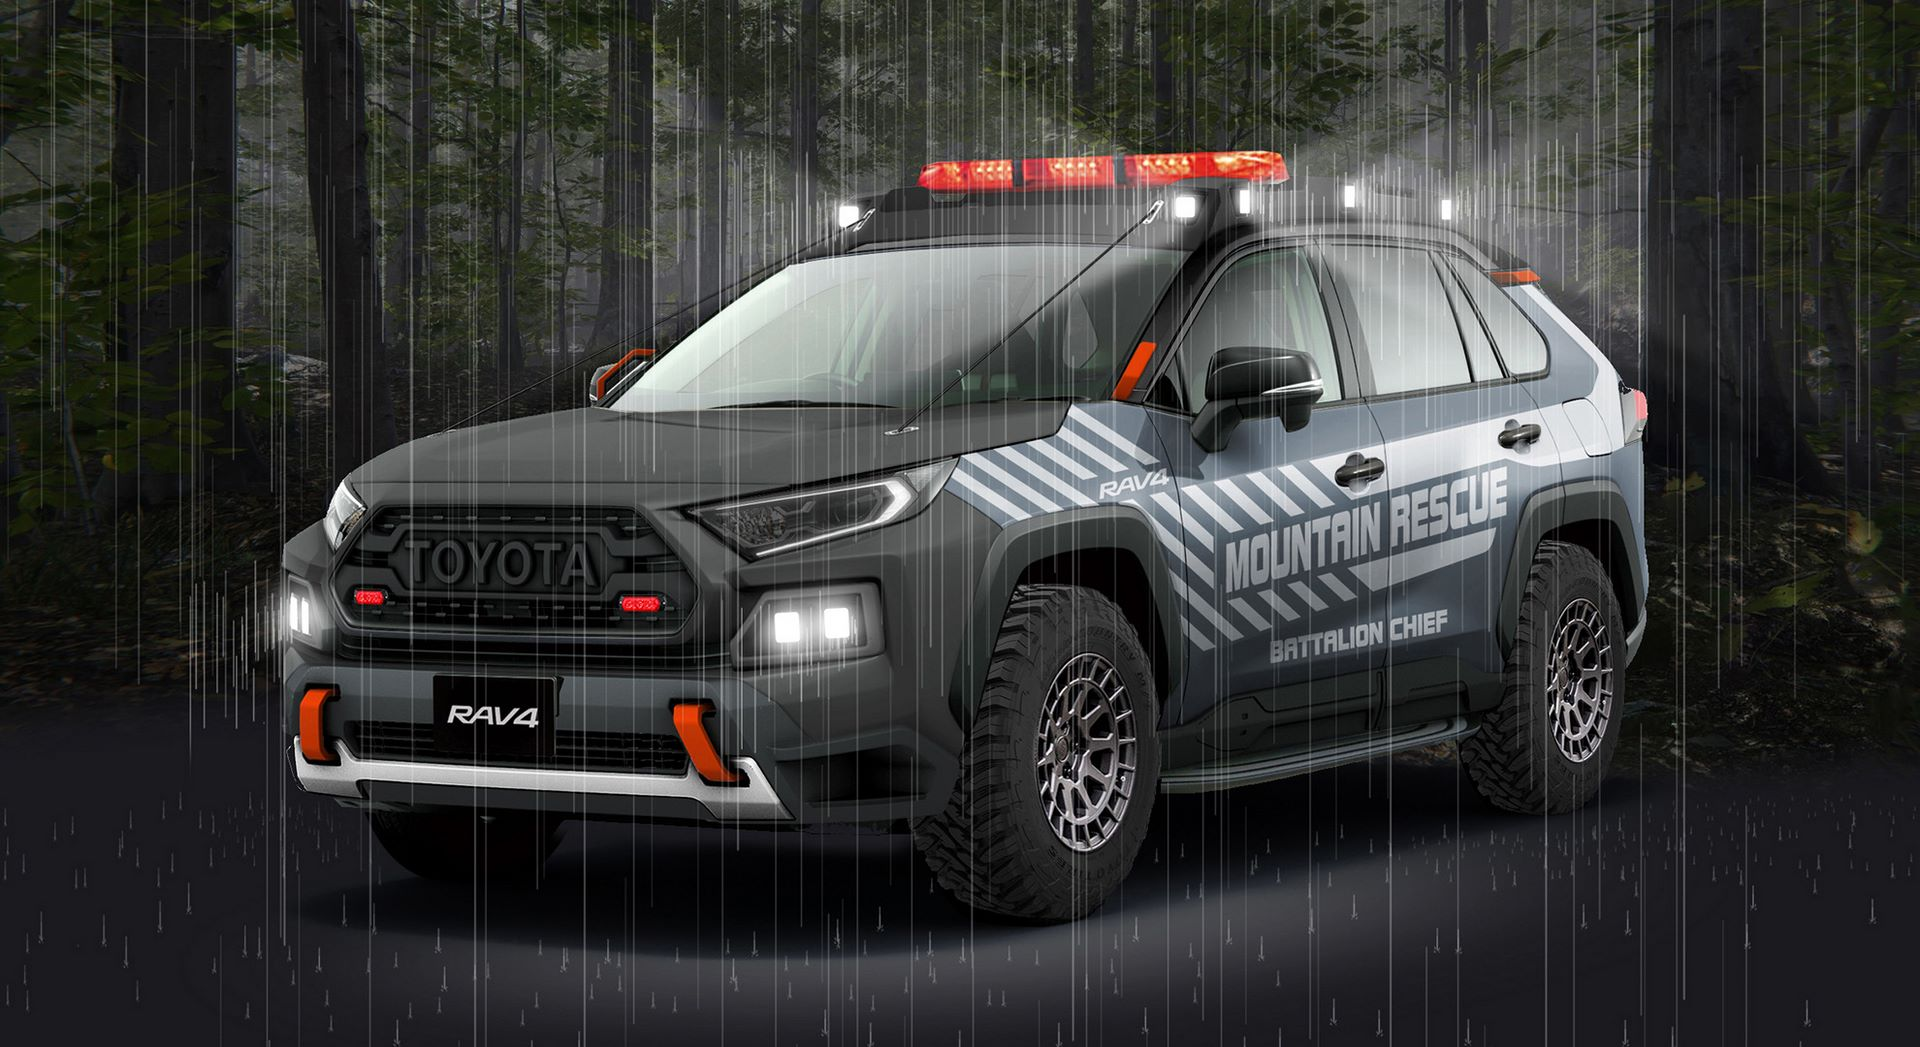 Toyota-RAV4-Mountain-Rescue-Concept-1